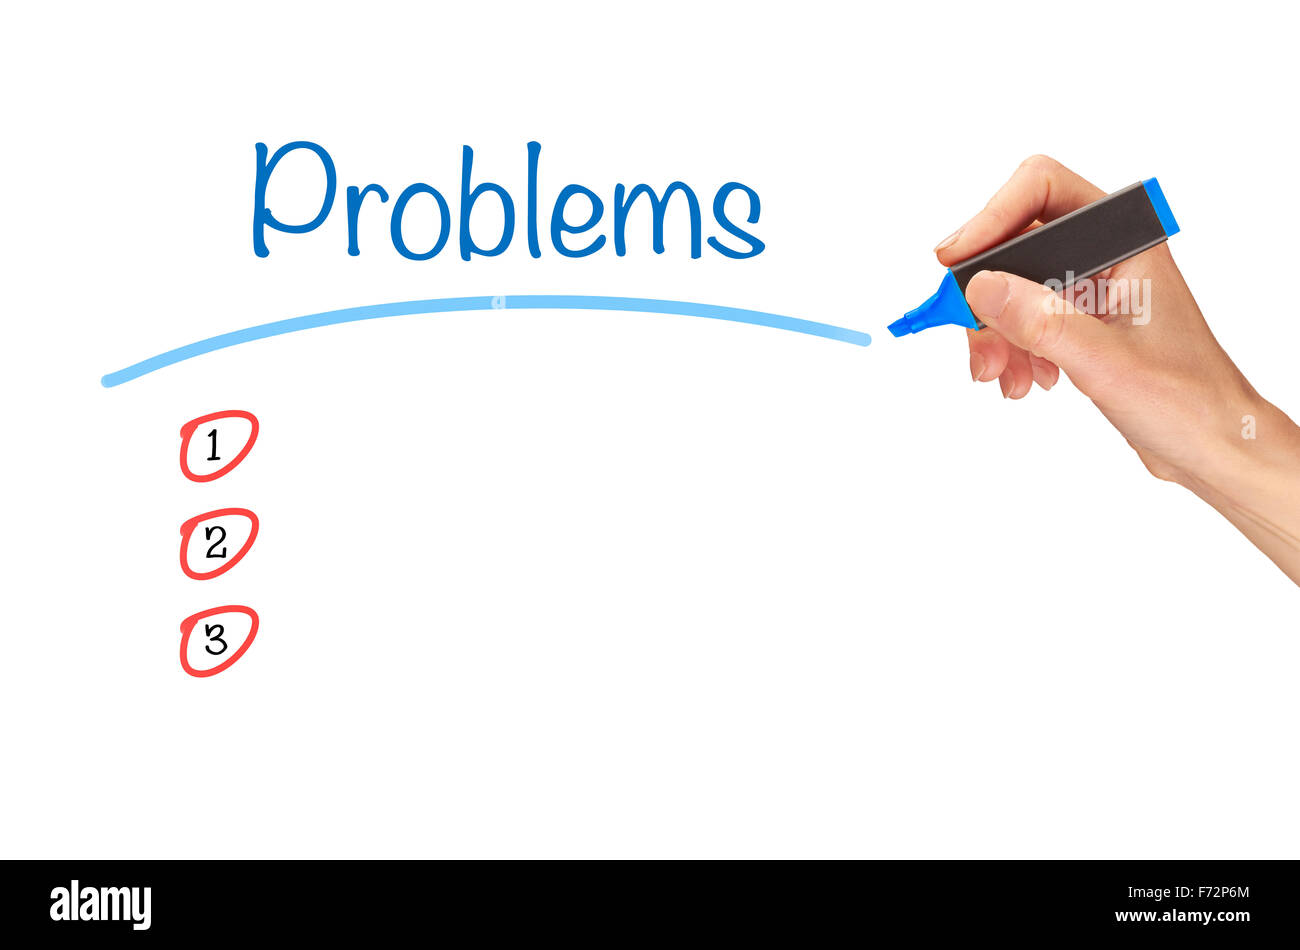 Problems, written in marker on a clear screen. - Stock Image